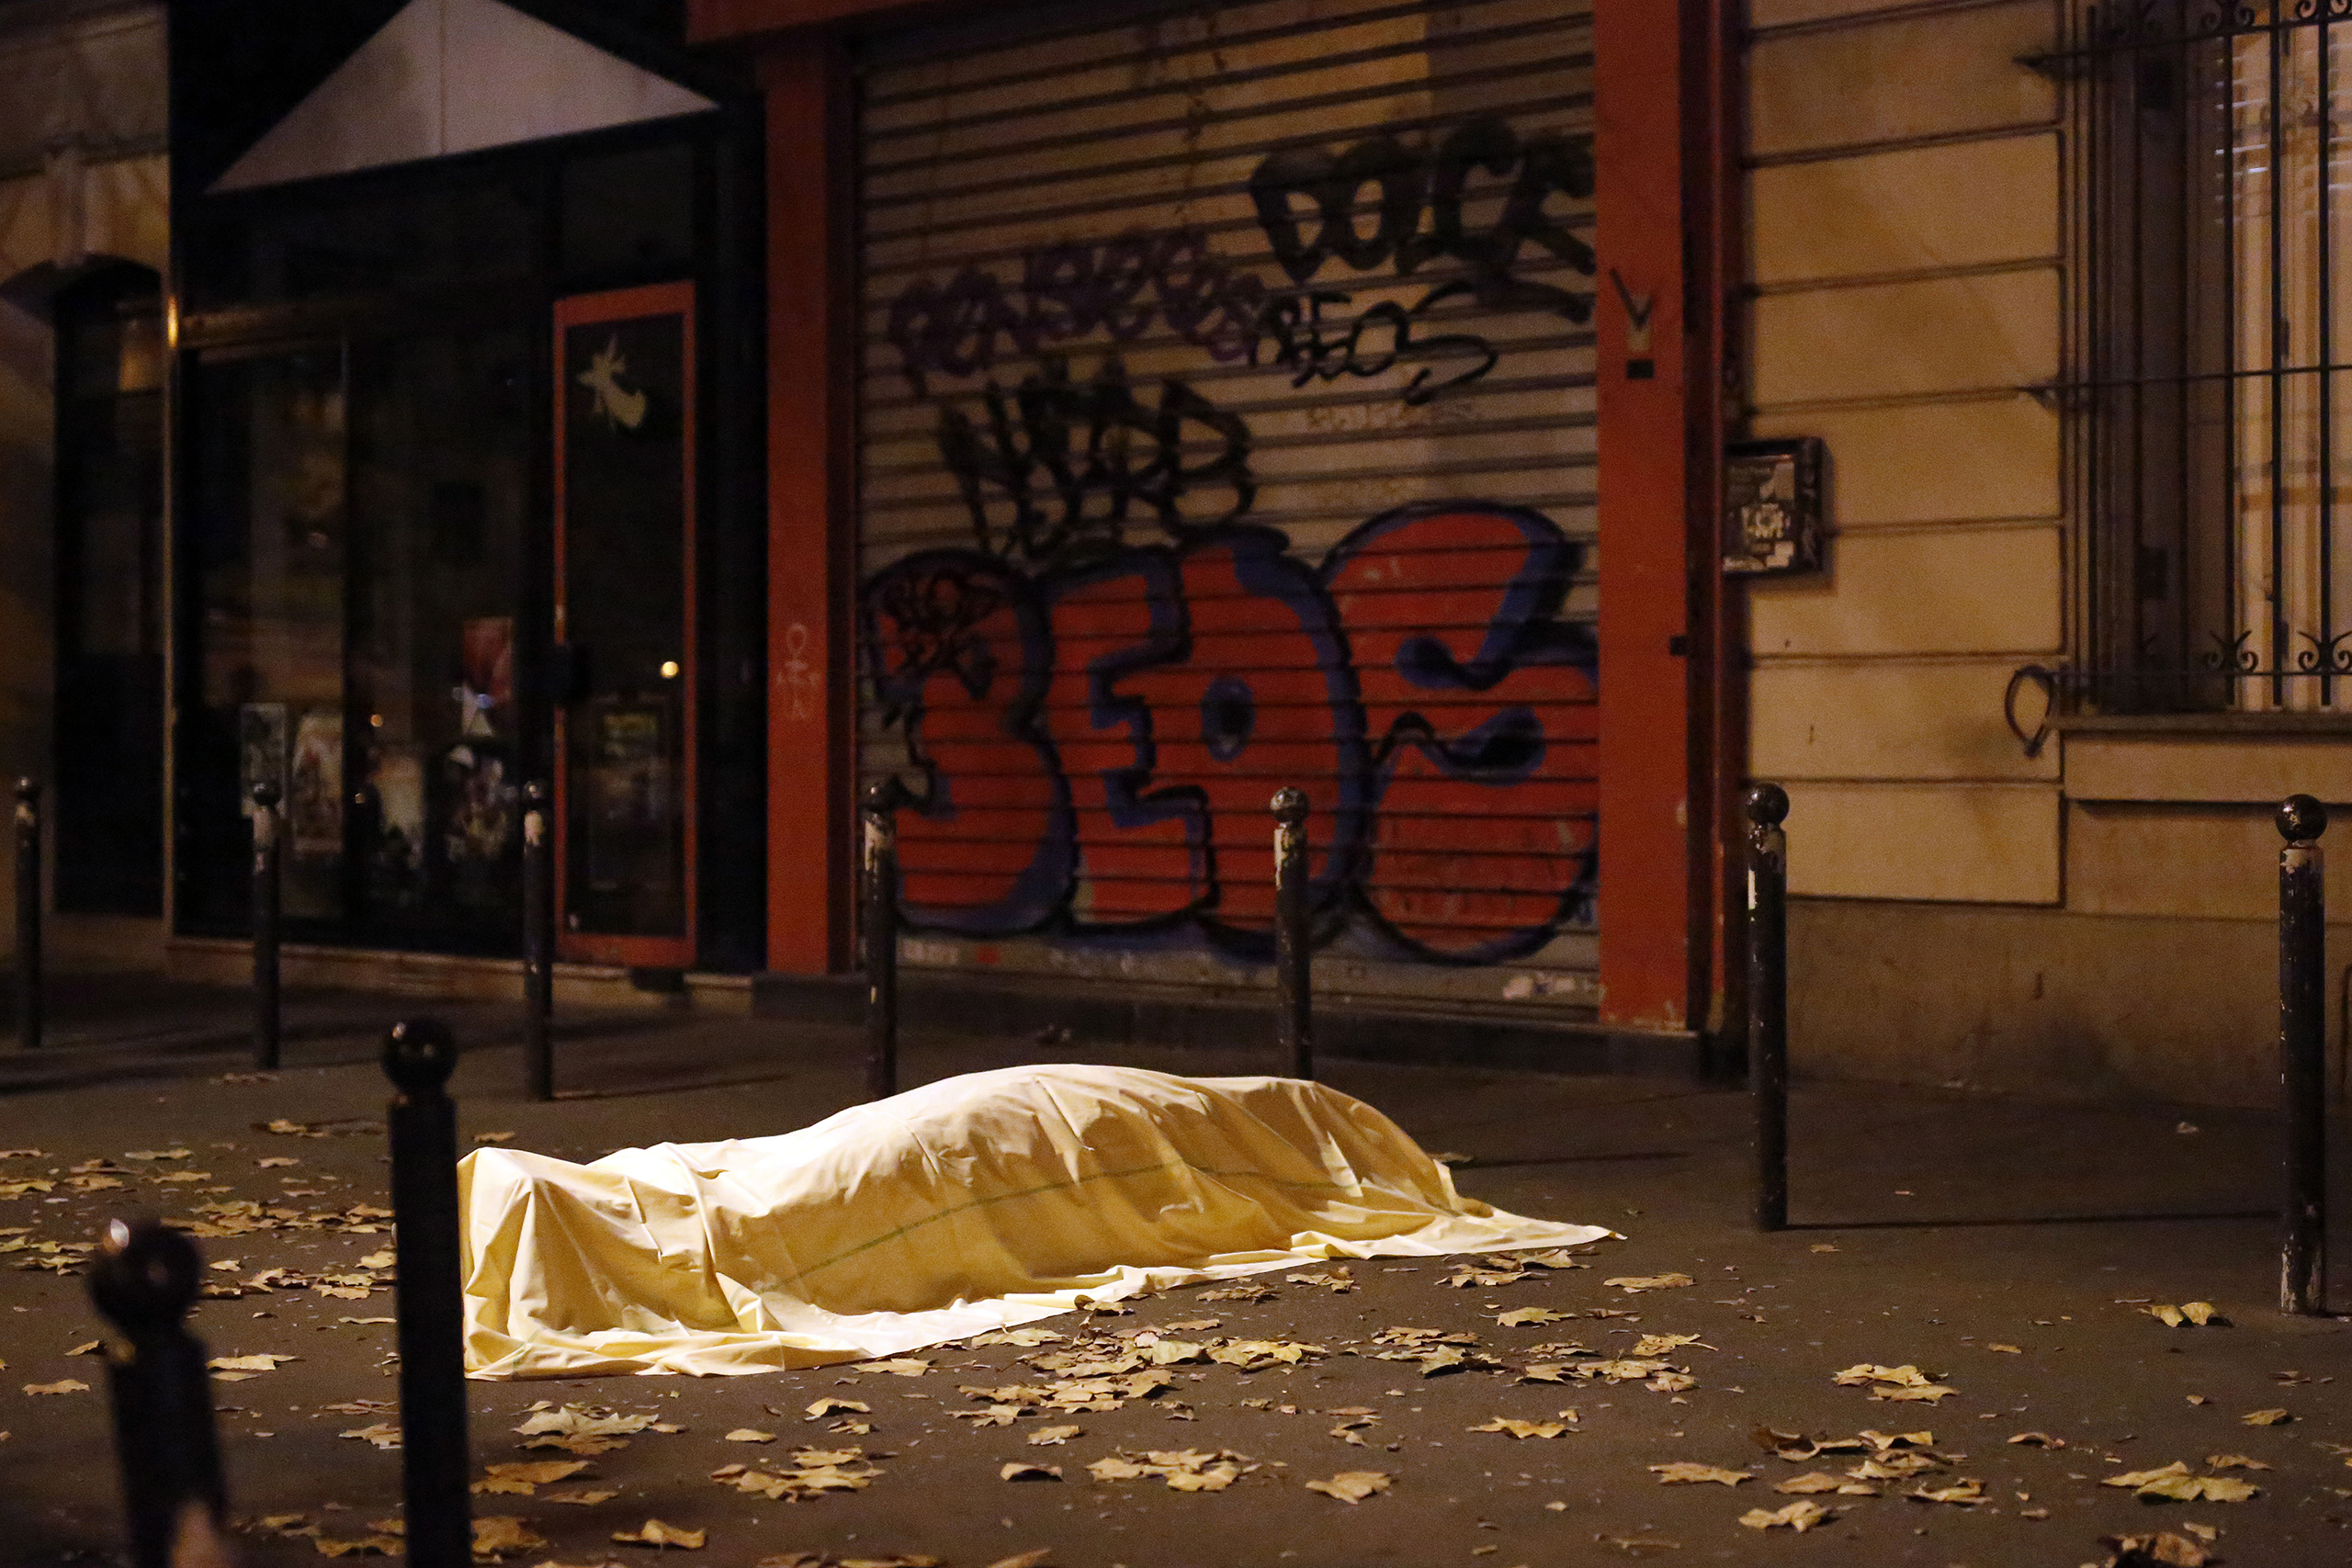 A victim of an attack at the Bataclan music hall lays dead outside the theater, Paris, Nov. 13, 2015. Eighty-nine people were killed in that attack, one of several throughout the night across Paris that killed 130.